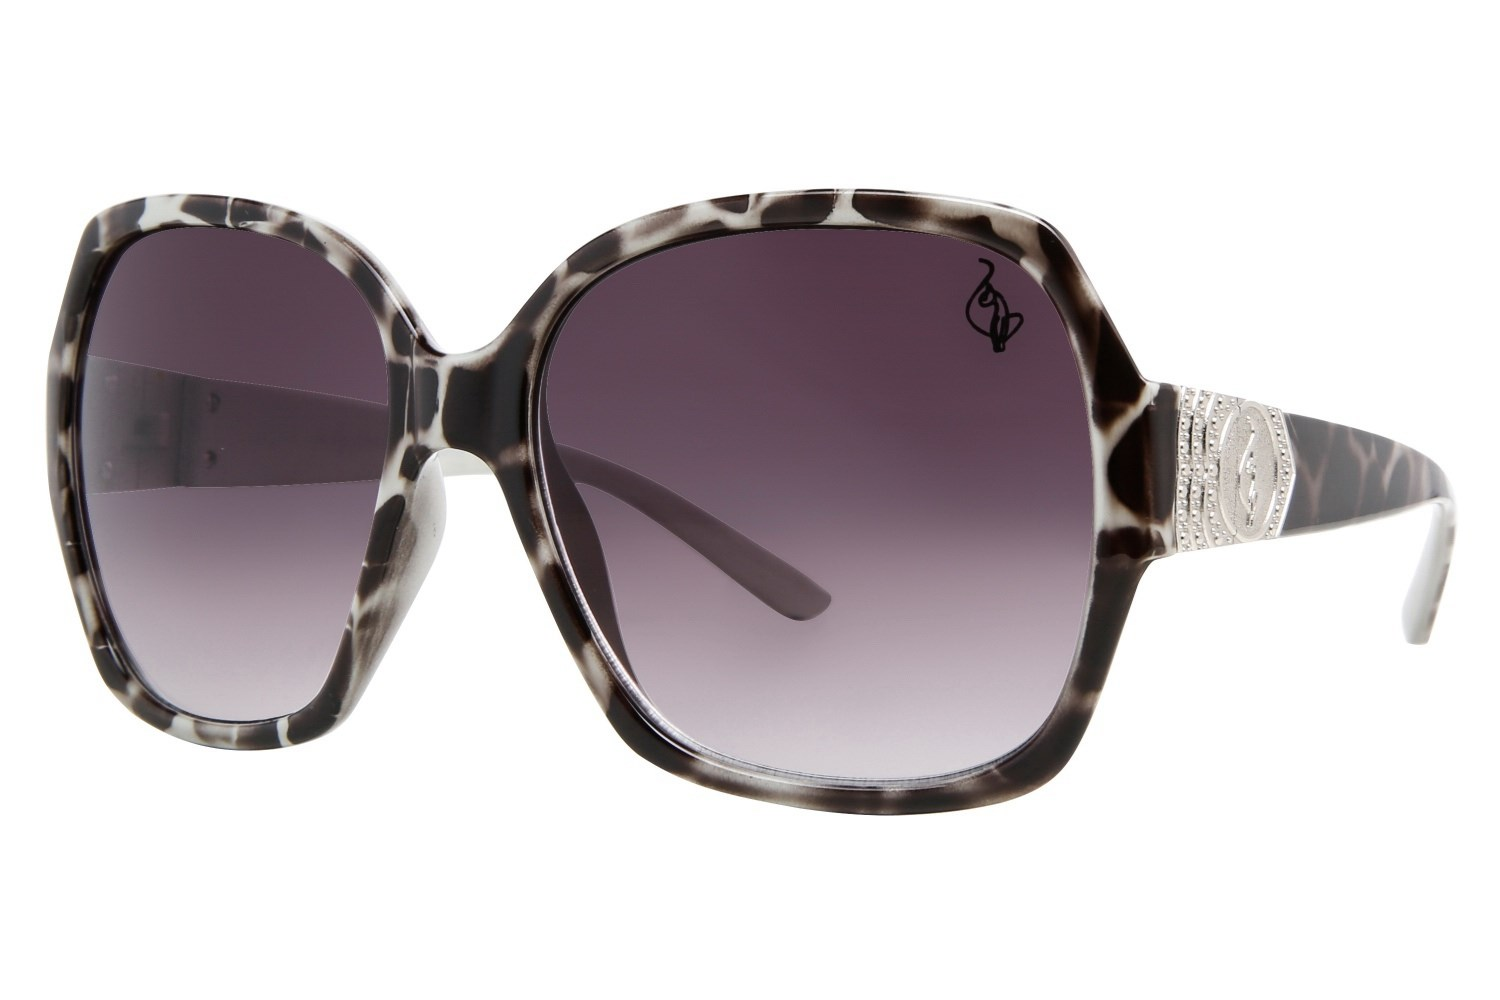 discounted sunglasses promo code www tapdance org